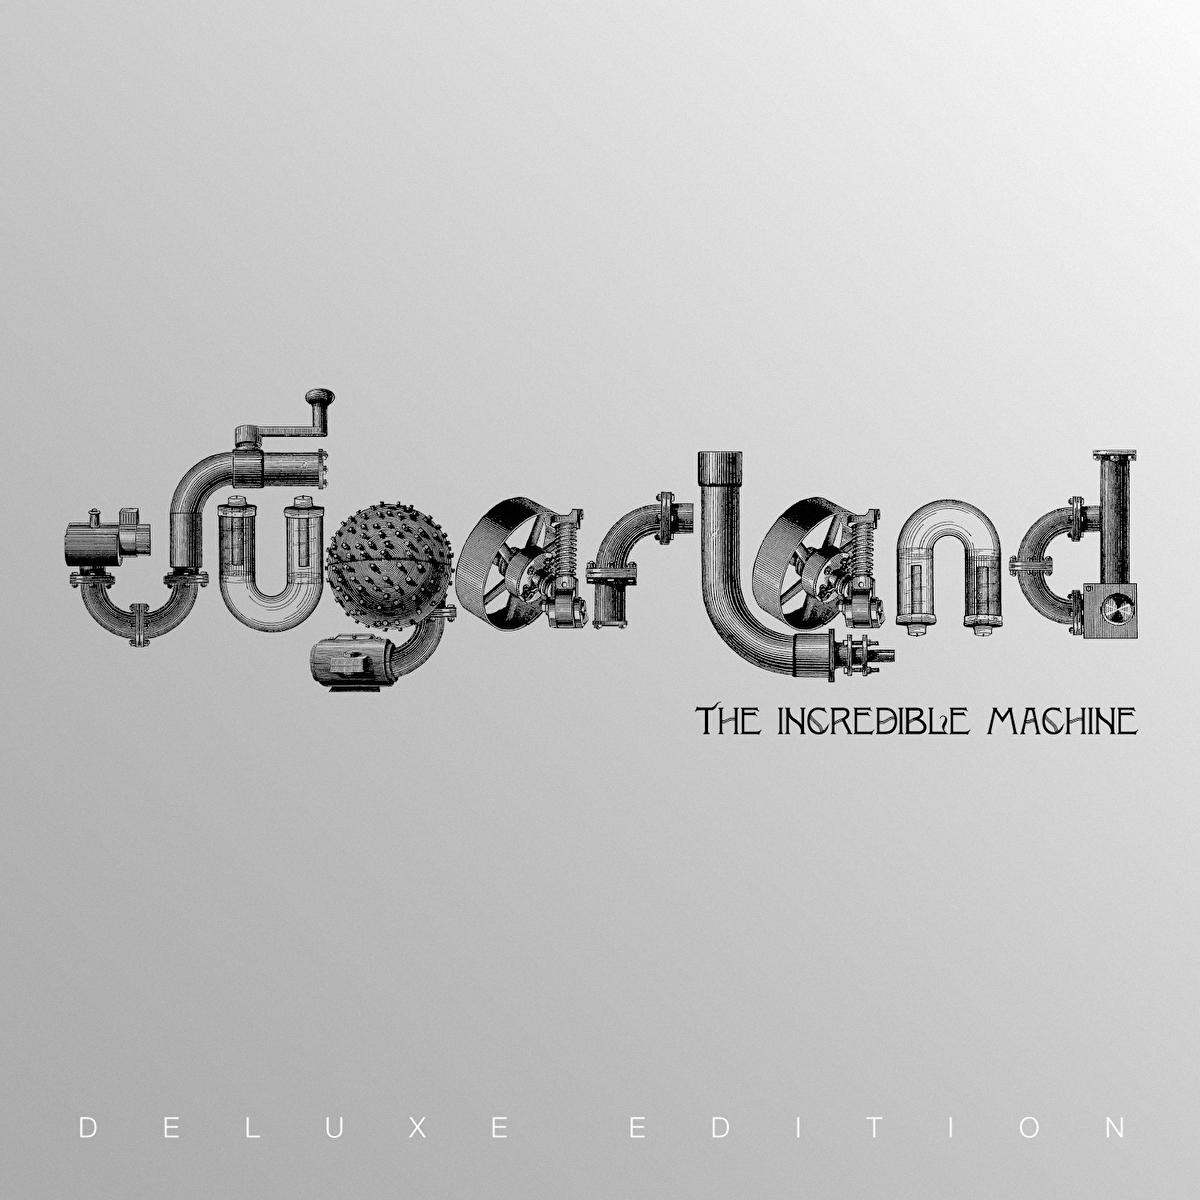 The Incredible Machine Deluxe Edition Sugarland CD cover